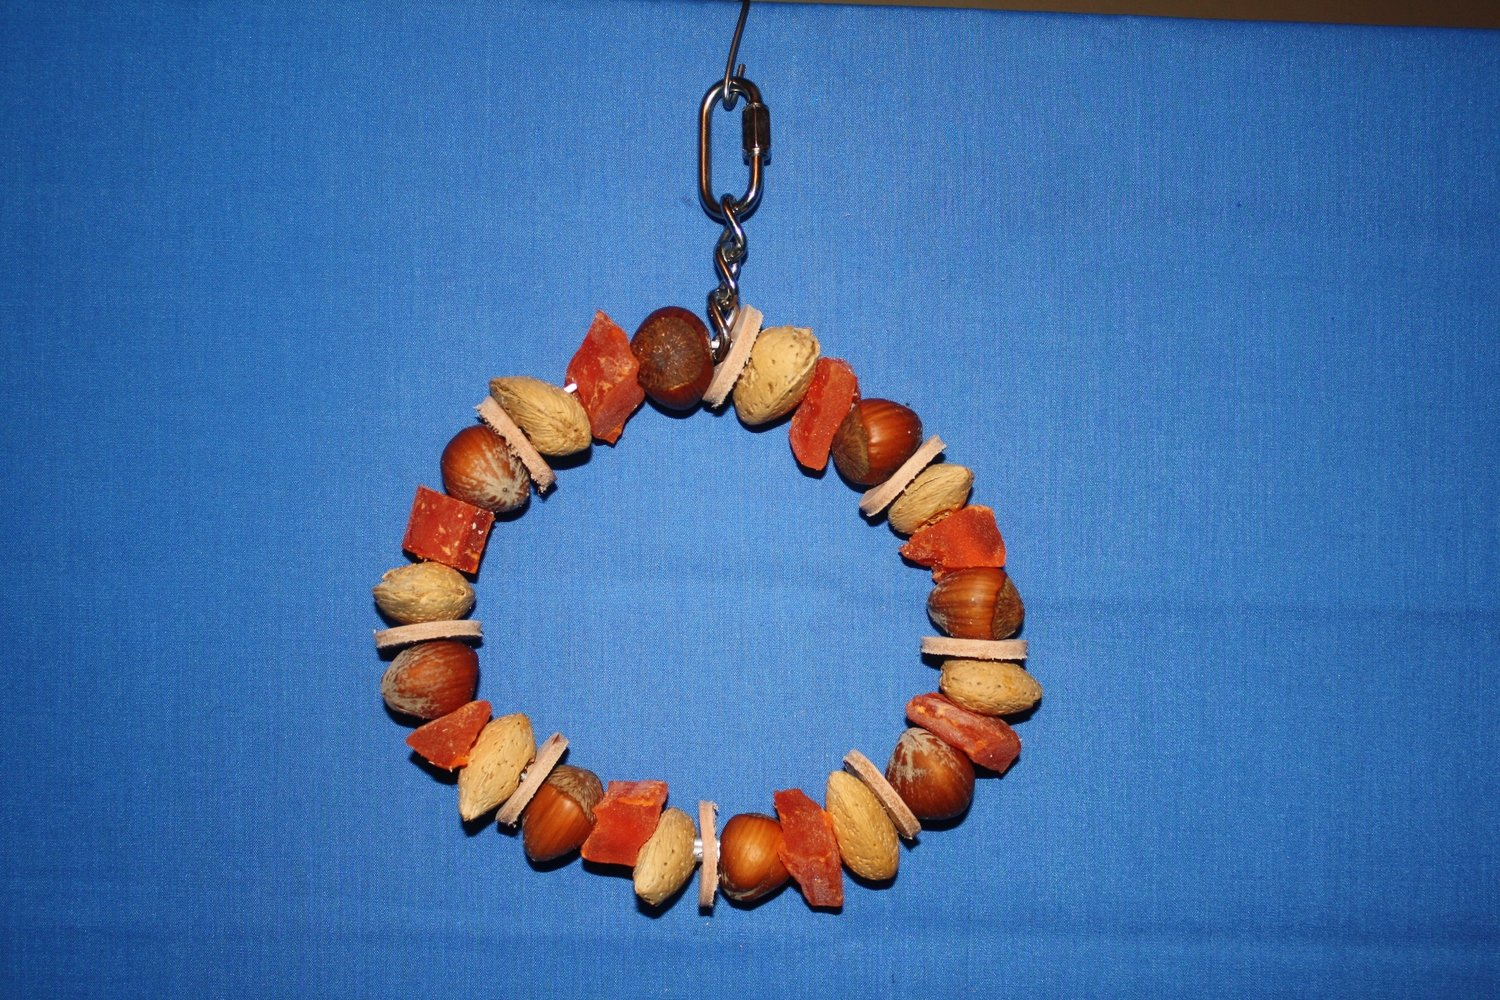 Mixed Nuts, Fruit and Leather